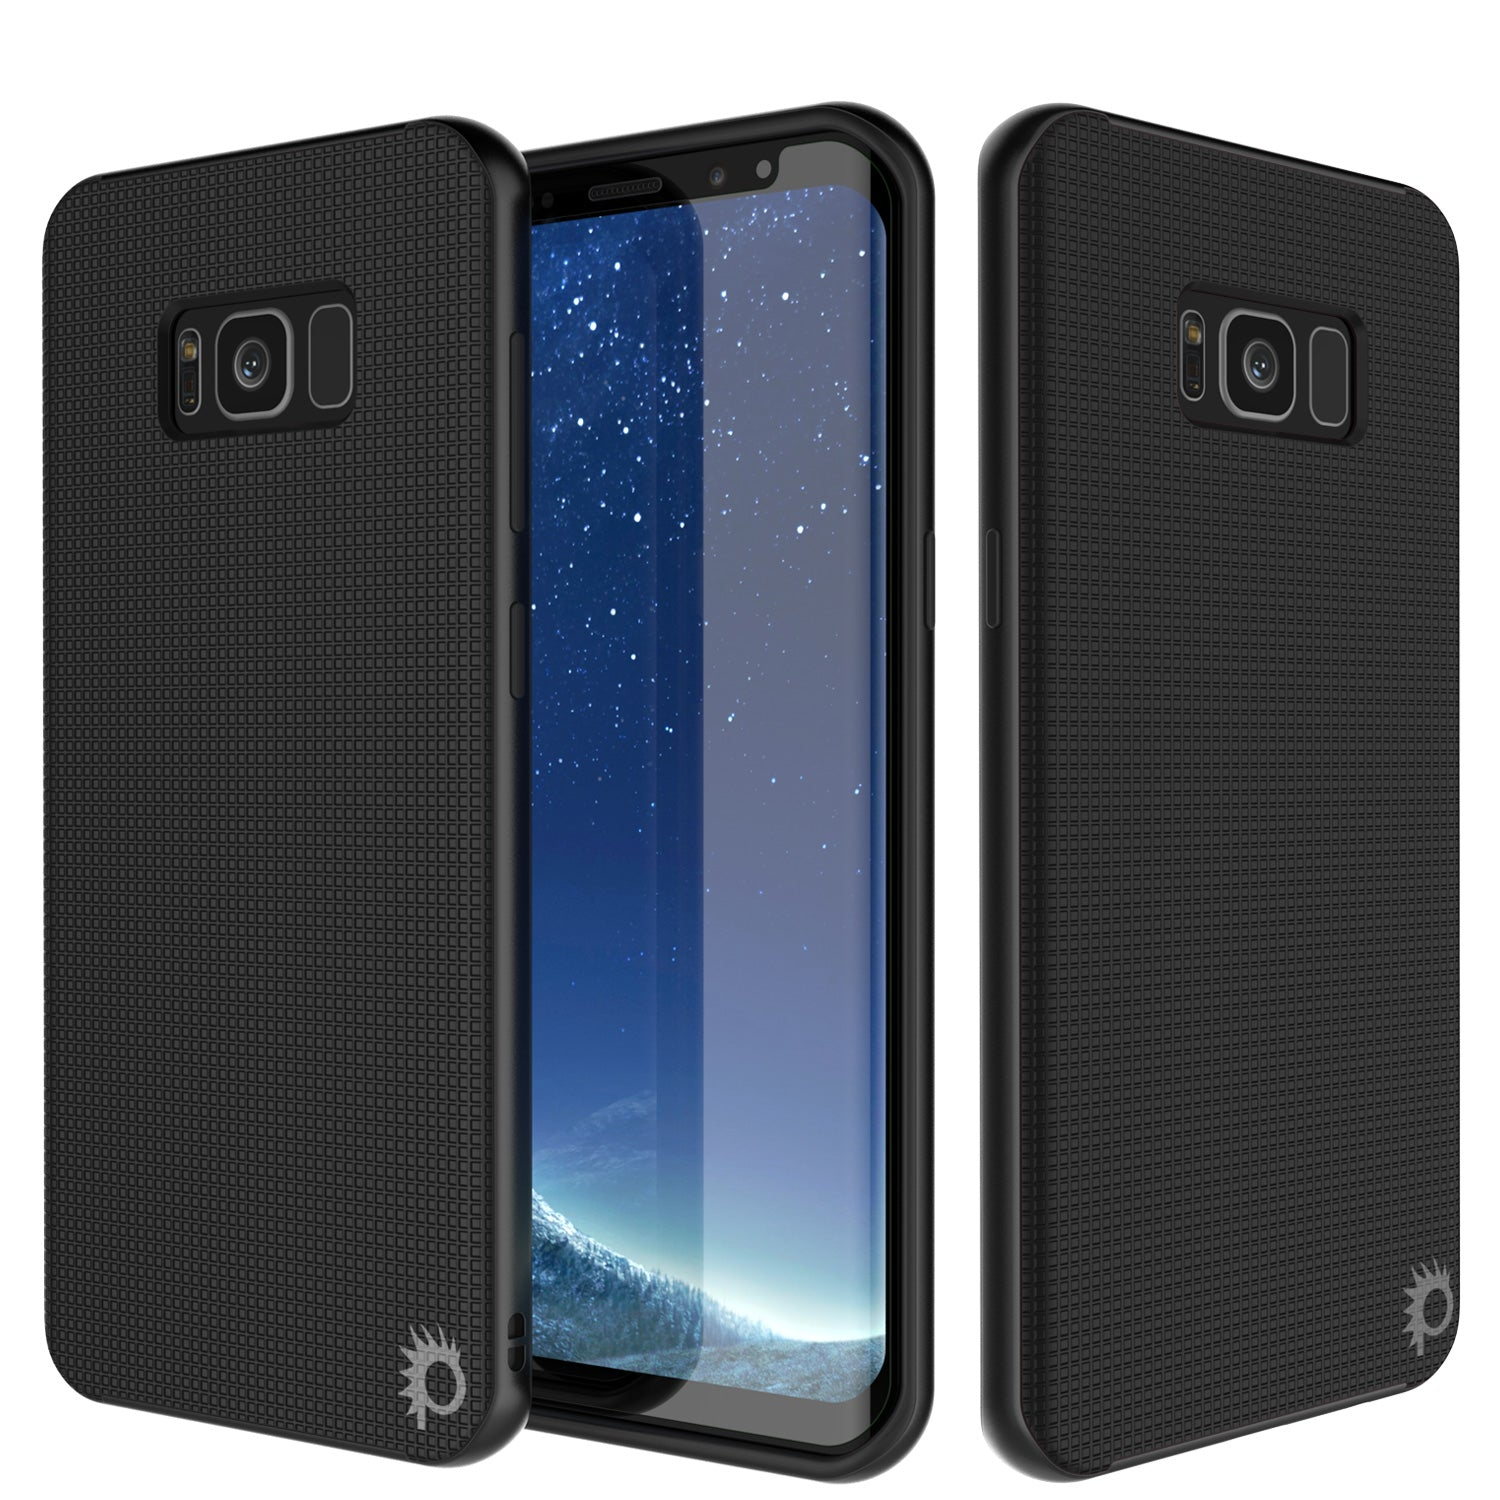 Galaxy S8 Plus Case, PunkCase Stealth Black Series Hybrid 3-Piece Shockproof Dual Layer Cover